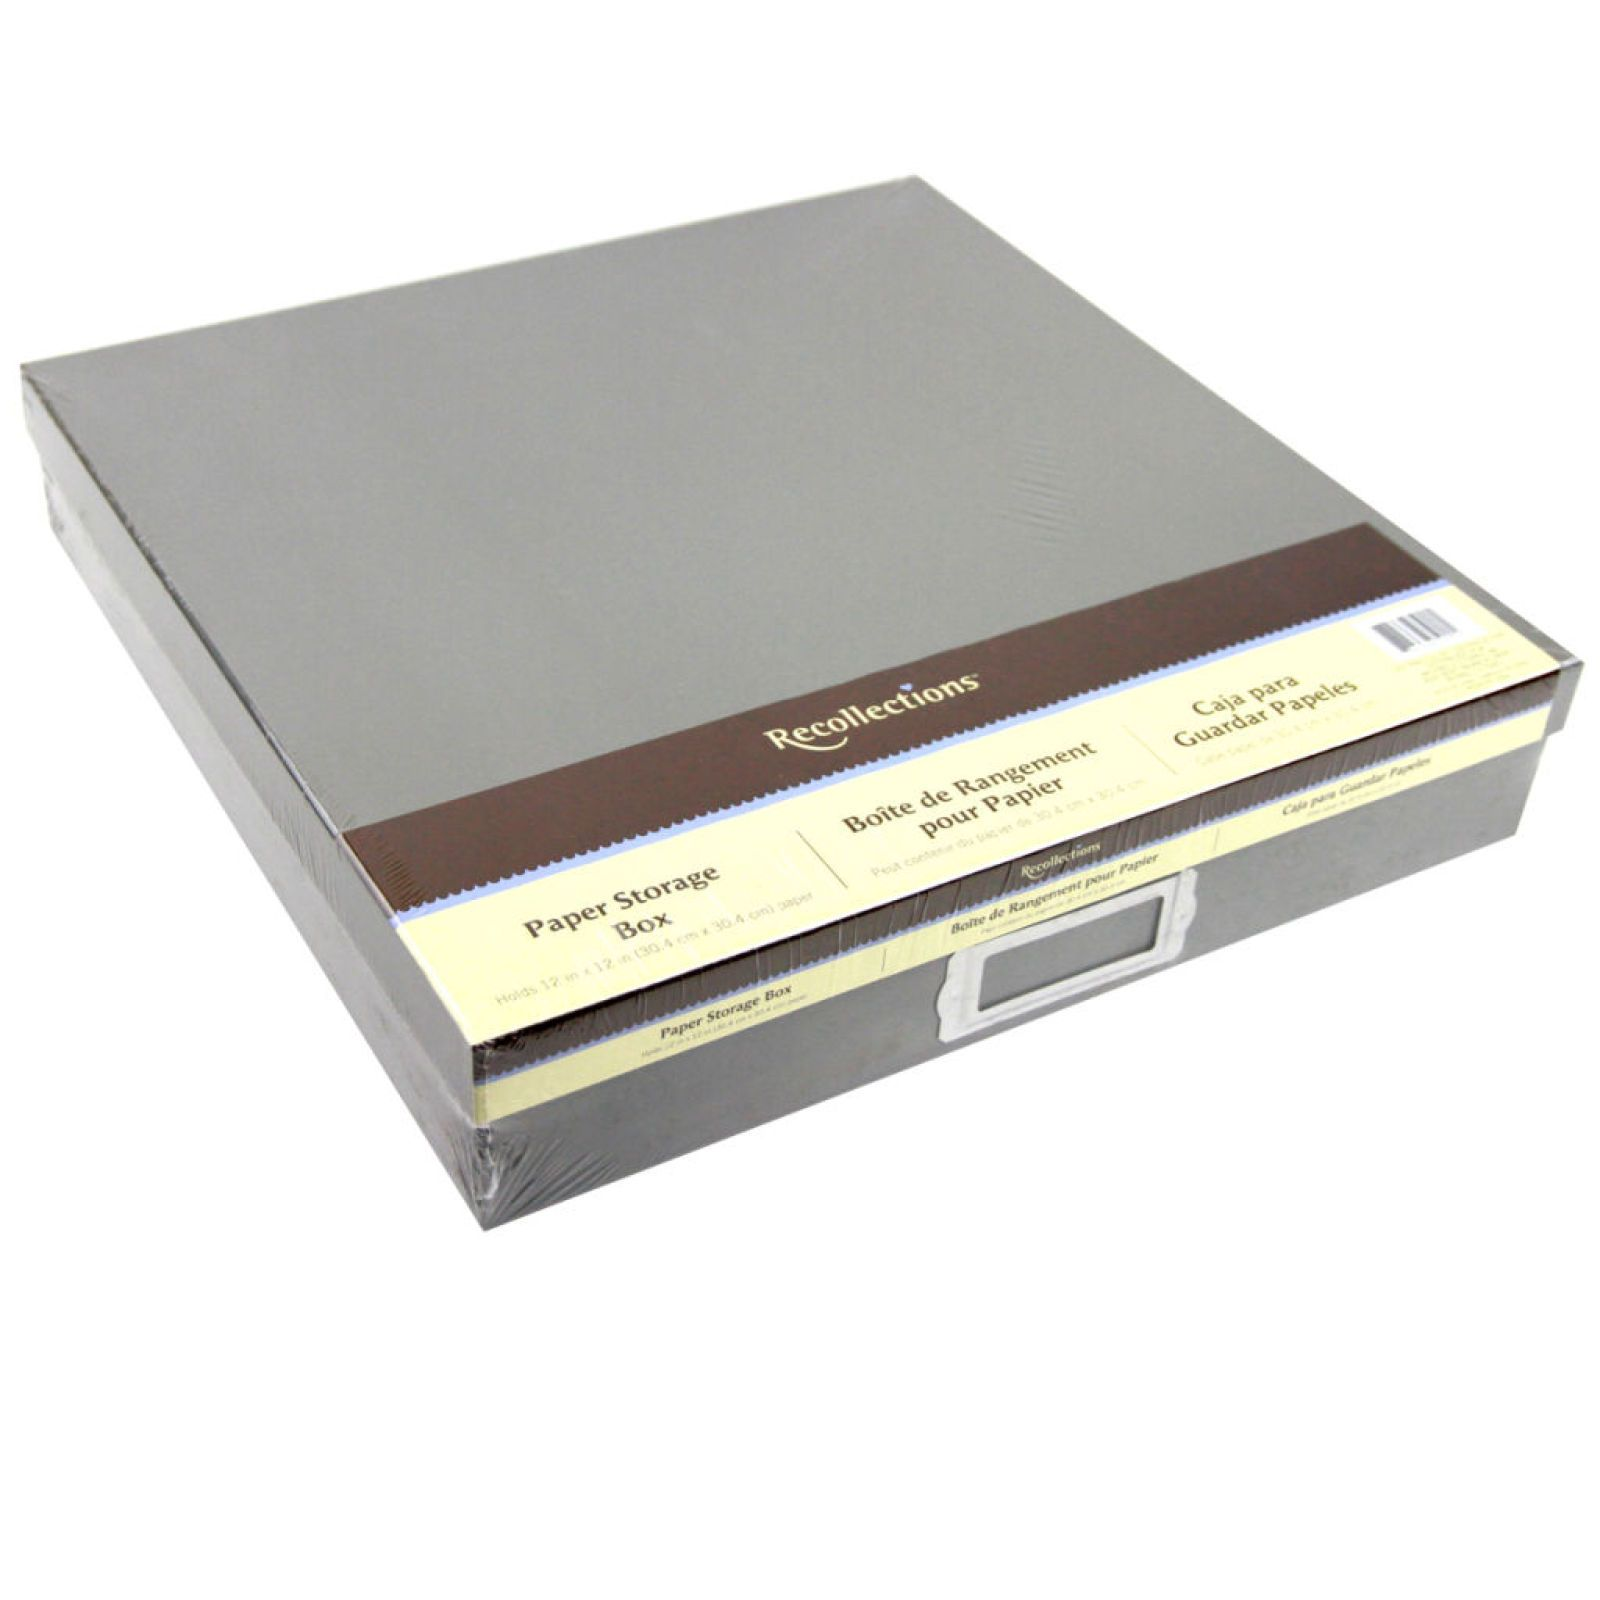 Recollections™ Paper Storage Box   Paper storage, Paper ...